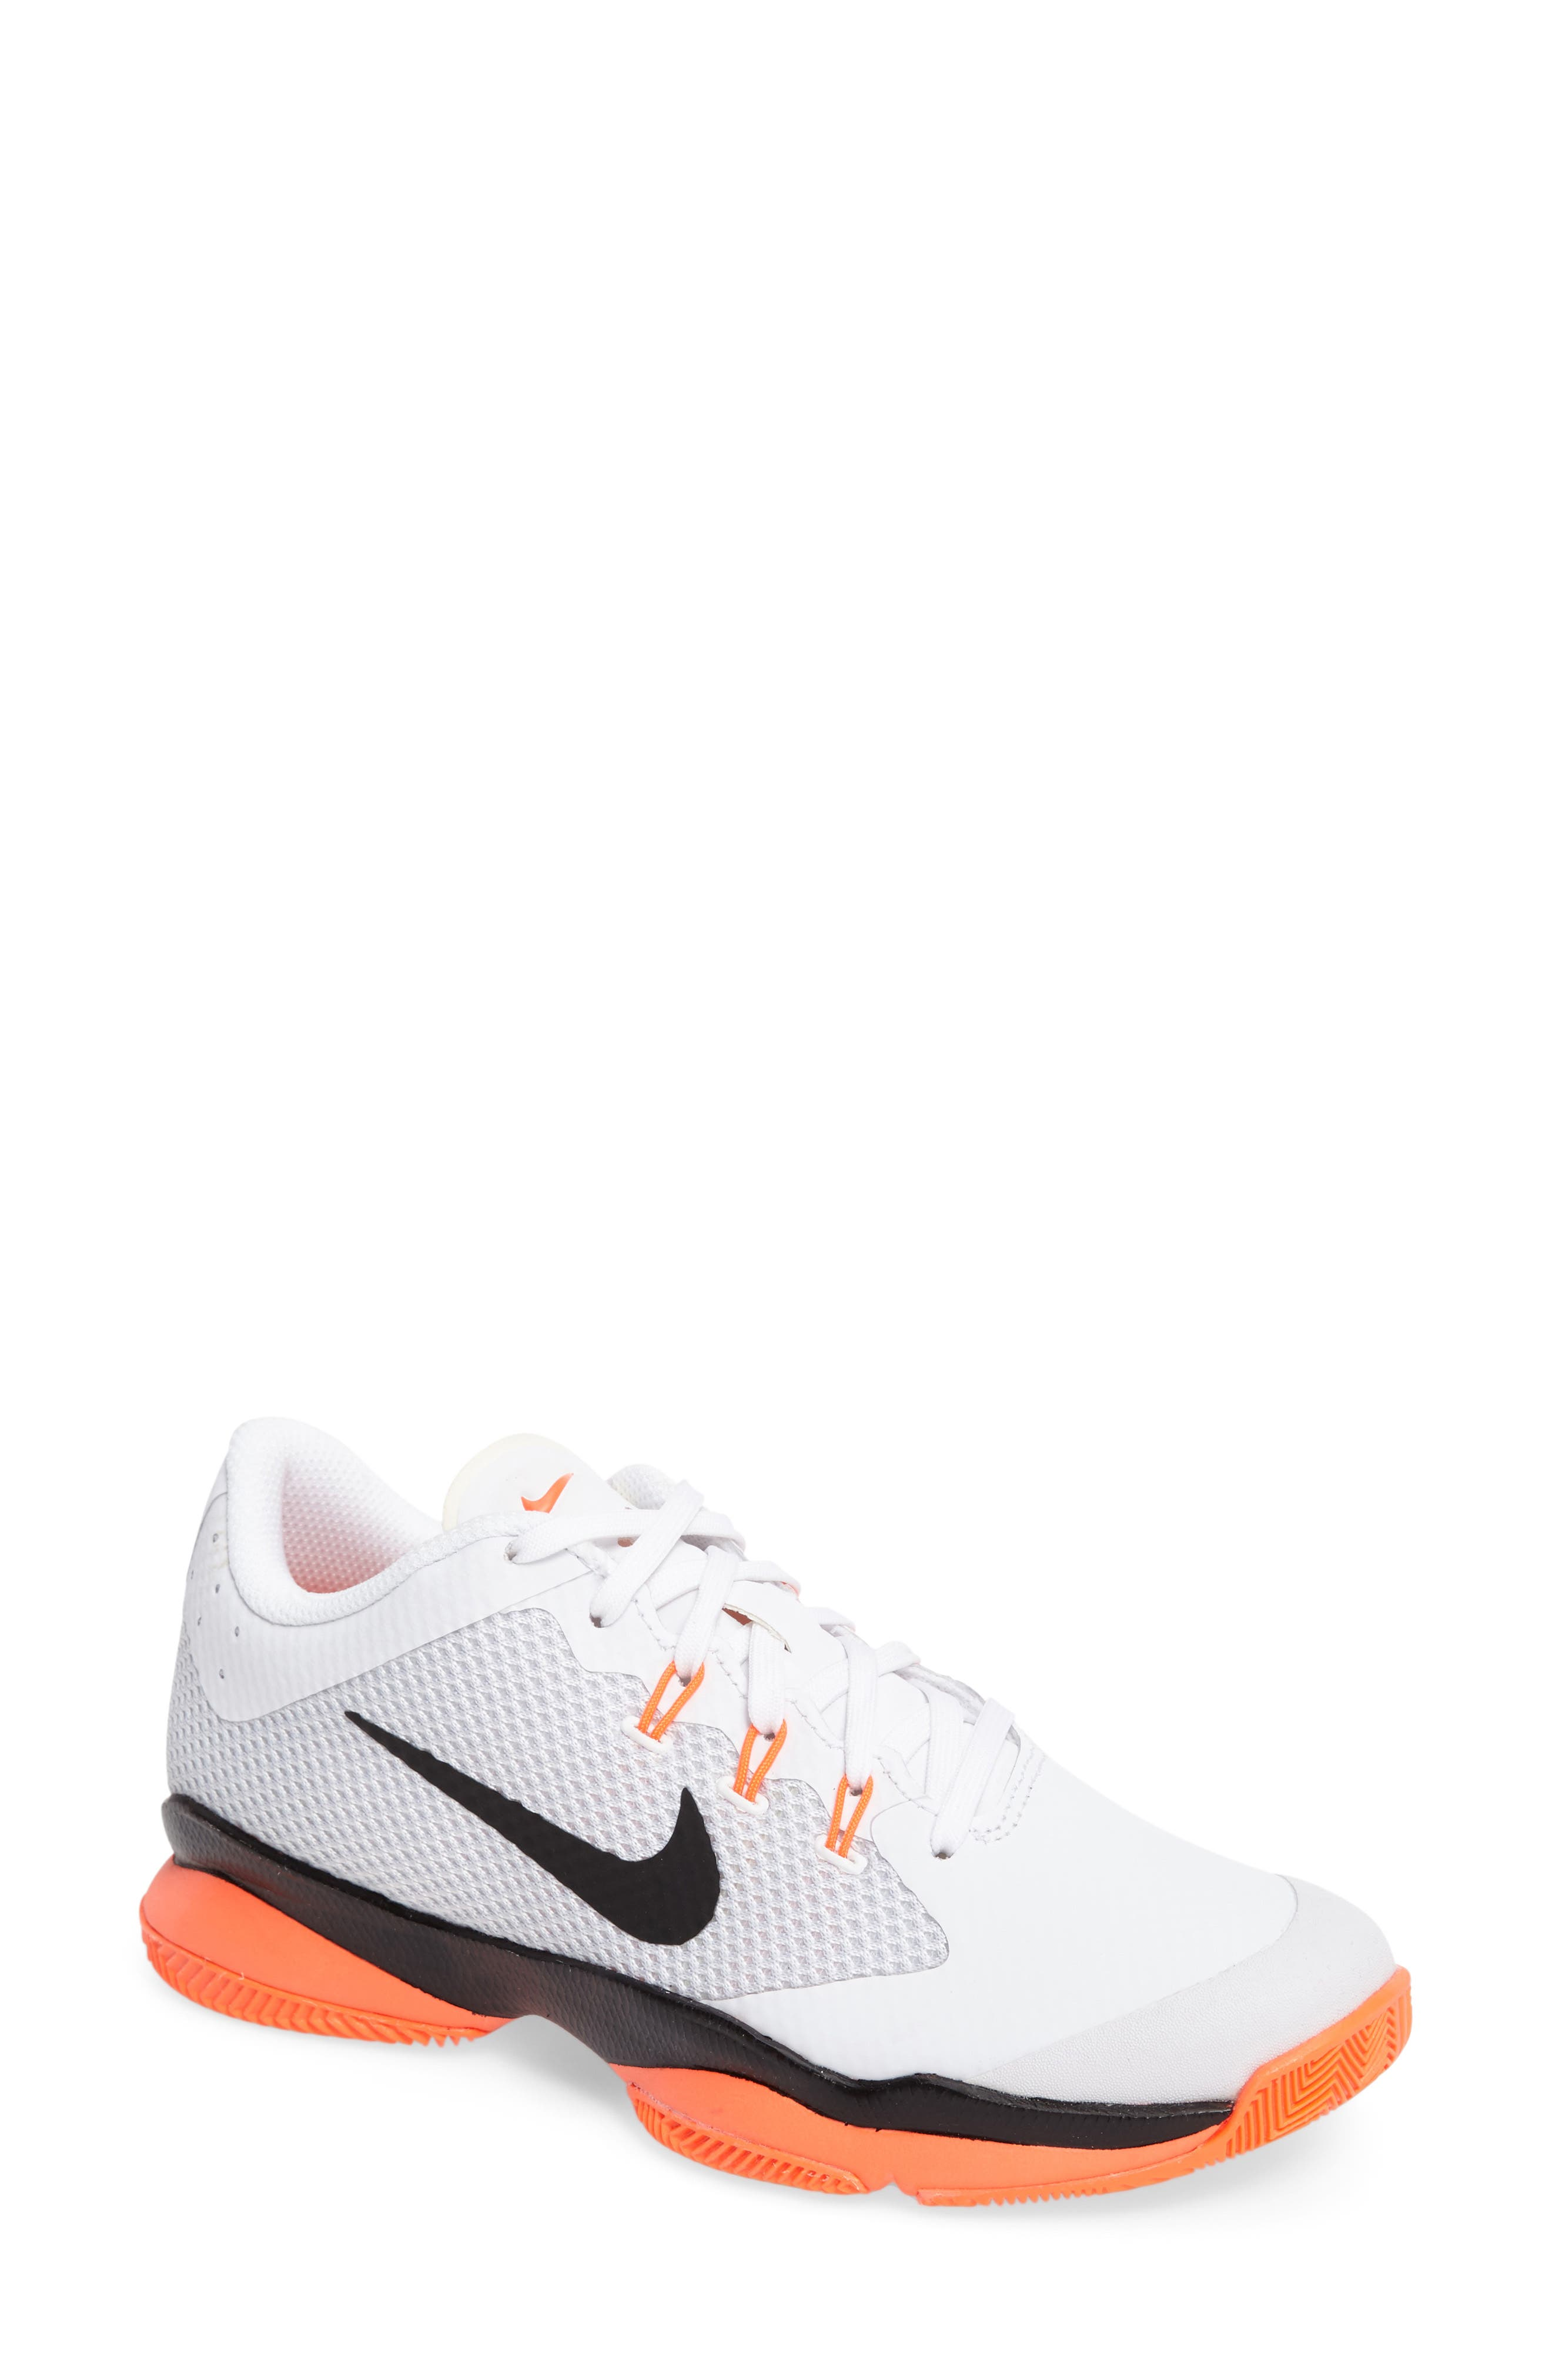 94cf9d13b65 Nike Court Air Zoom Ultra Women s - Musée des impressionnismes Giverny